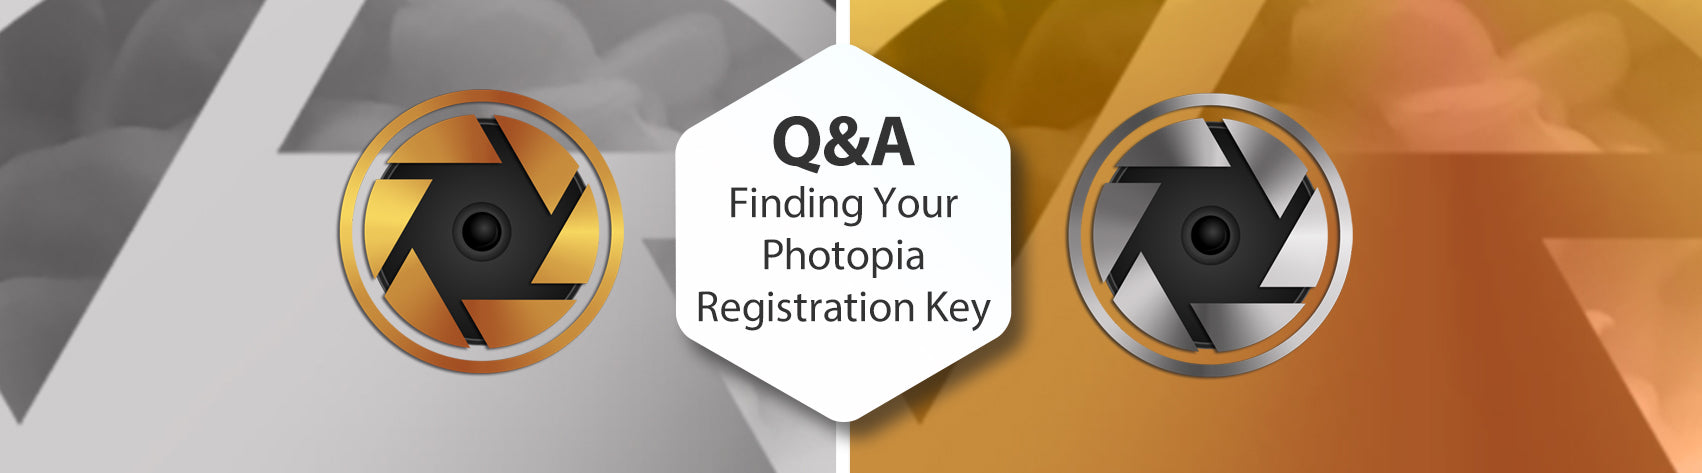 Q&A - Finding Your Photopia Registration Key